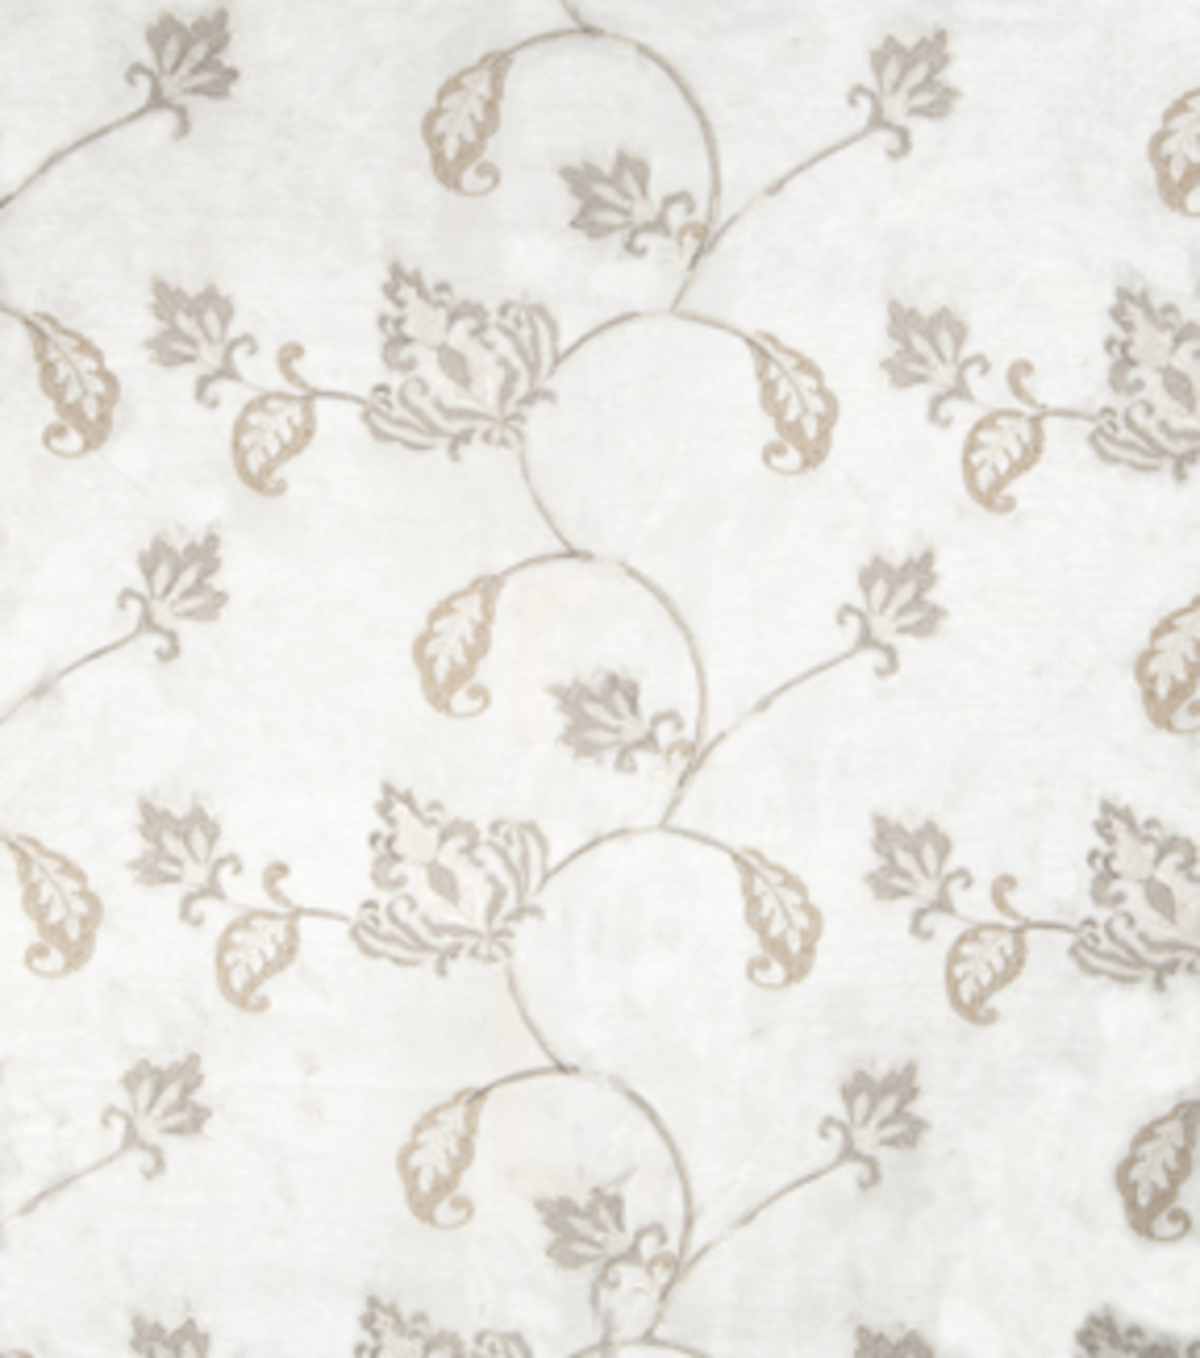 Home Decor 8\u0022x8\u0022 Fabric Swatch-Print Fabric Eaton Square Married Off White